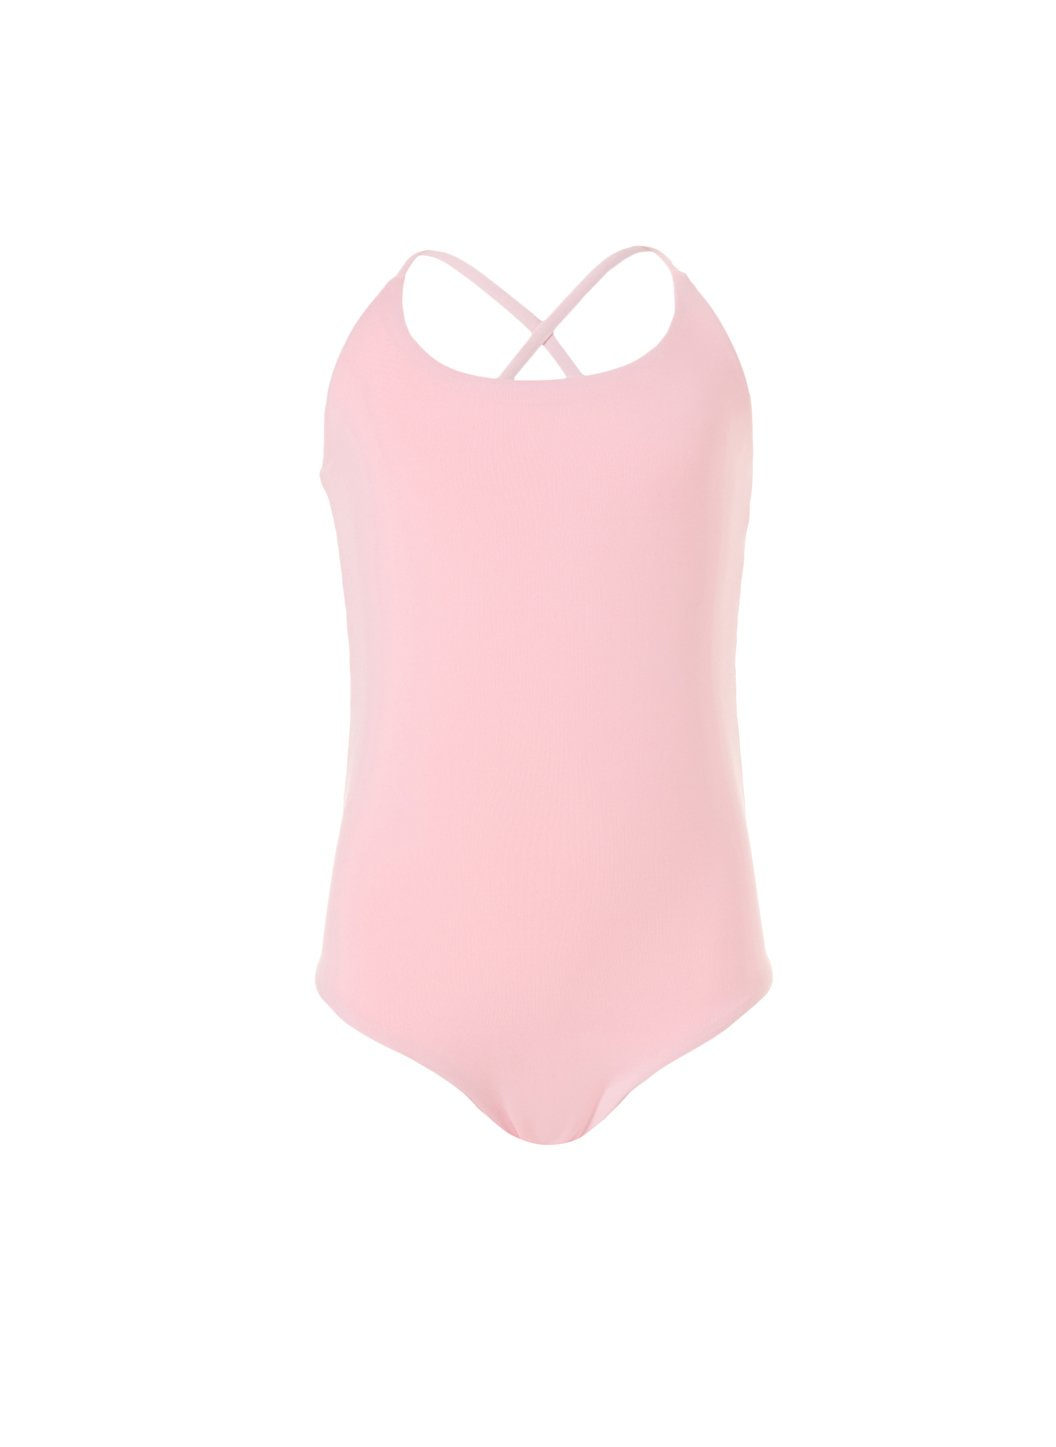 7b8ea6eefe Baby Vicky Pale Pink /Neon Cross-Back Onepiece Swimsuit | Melissa ...